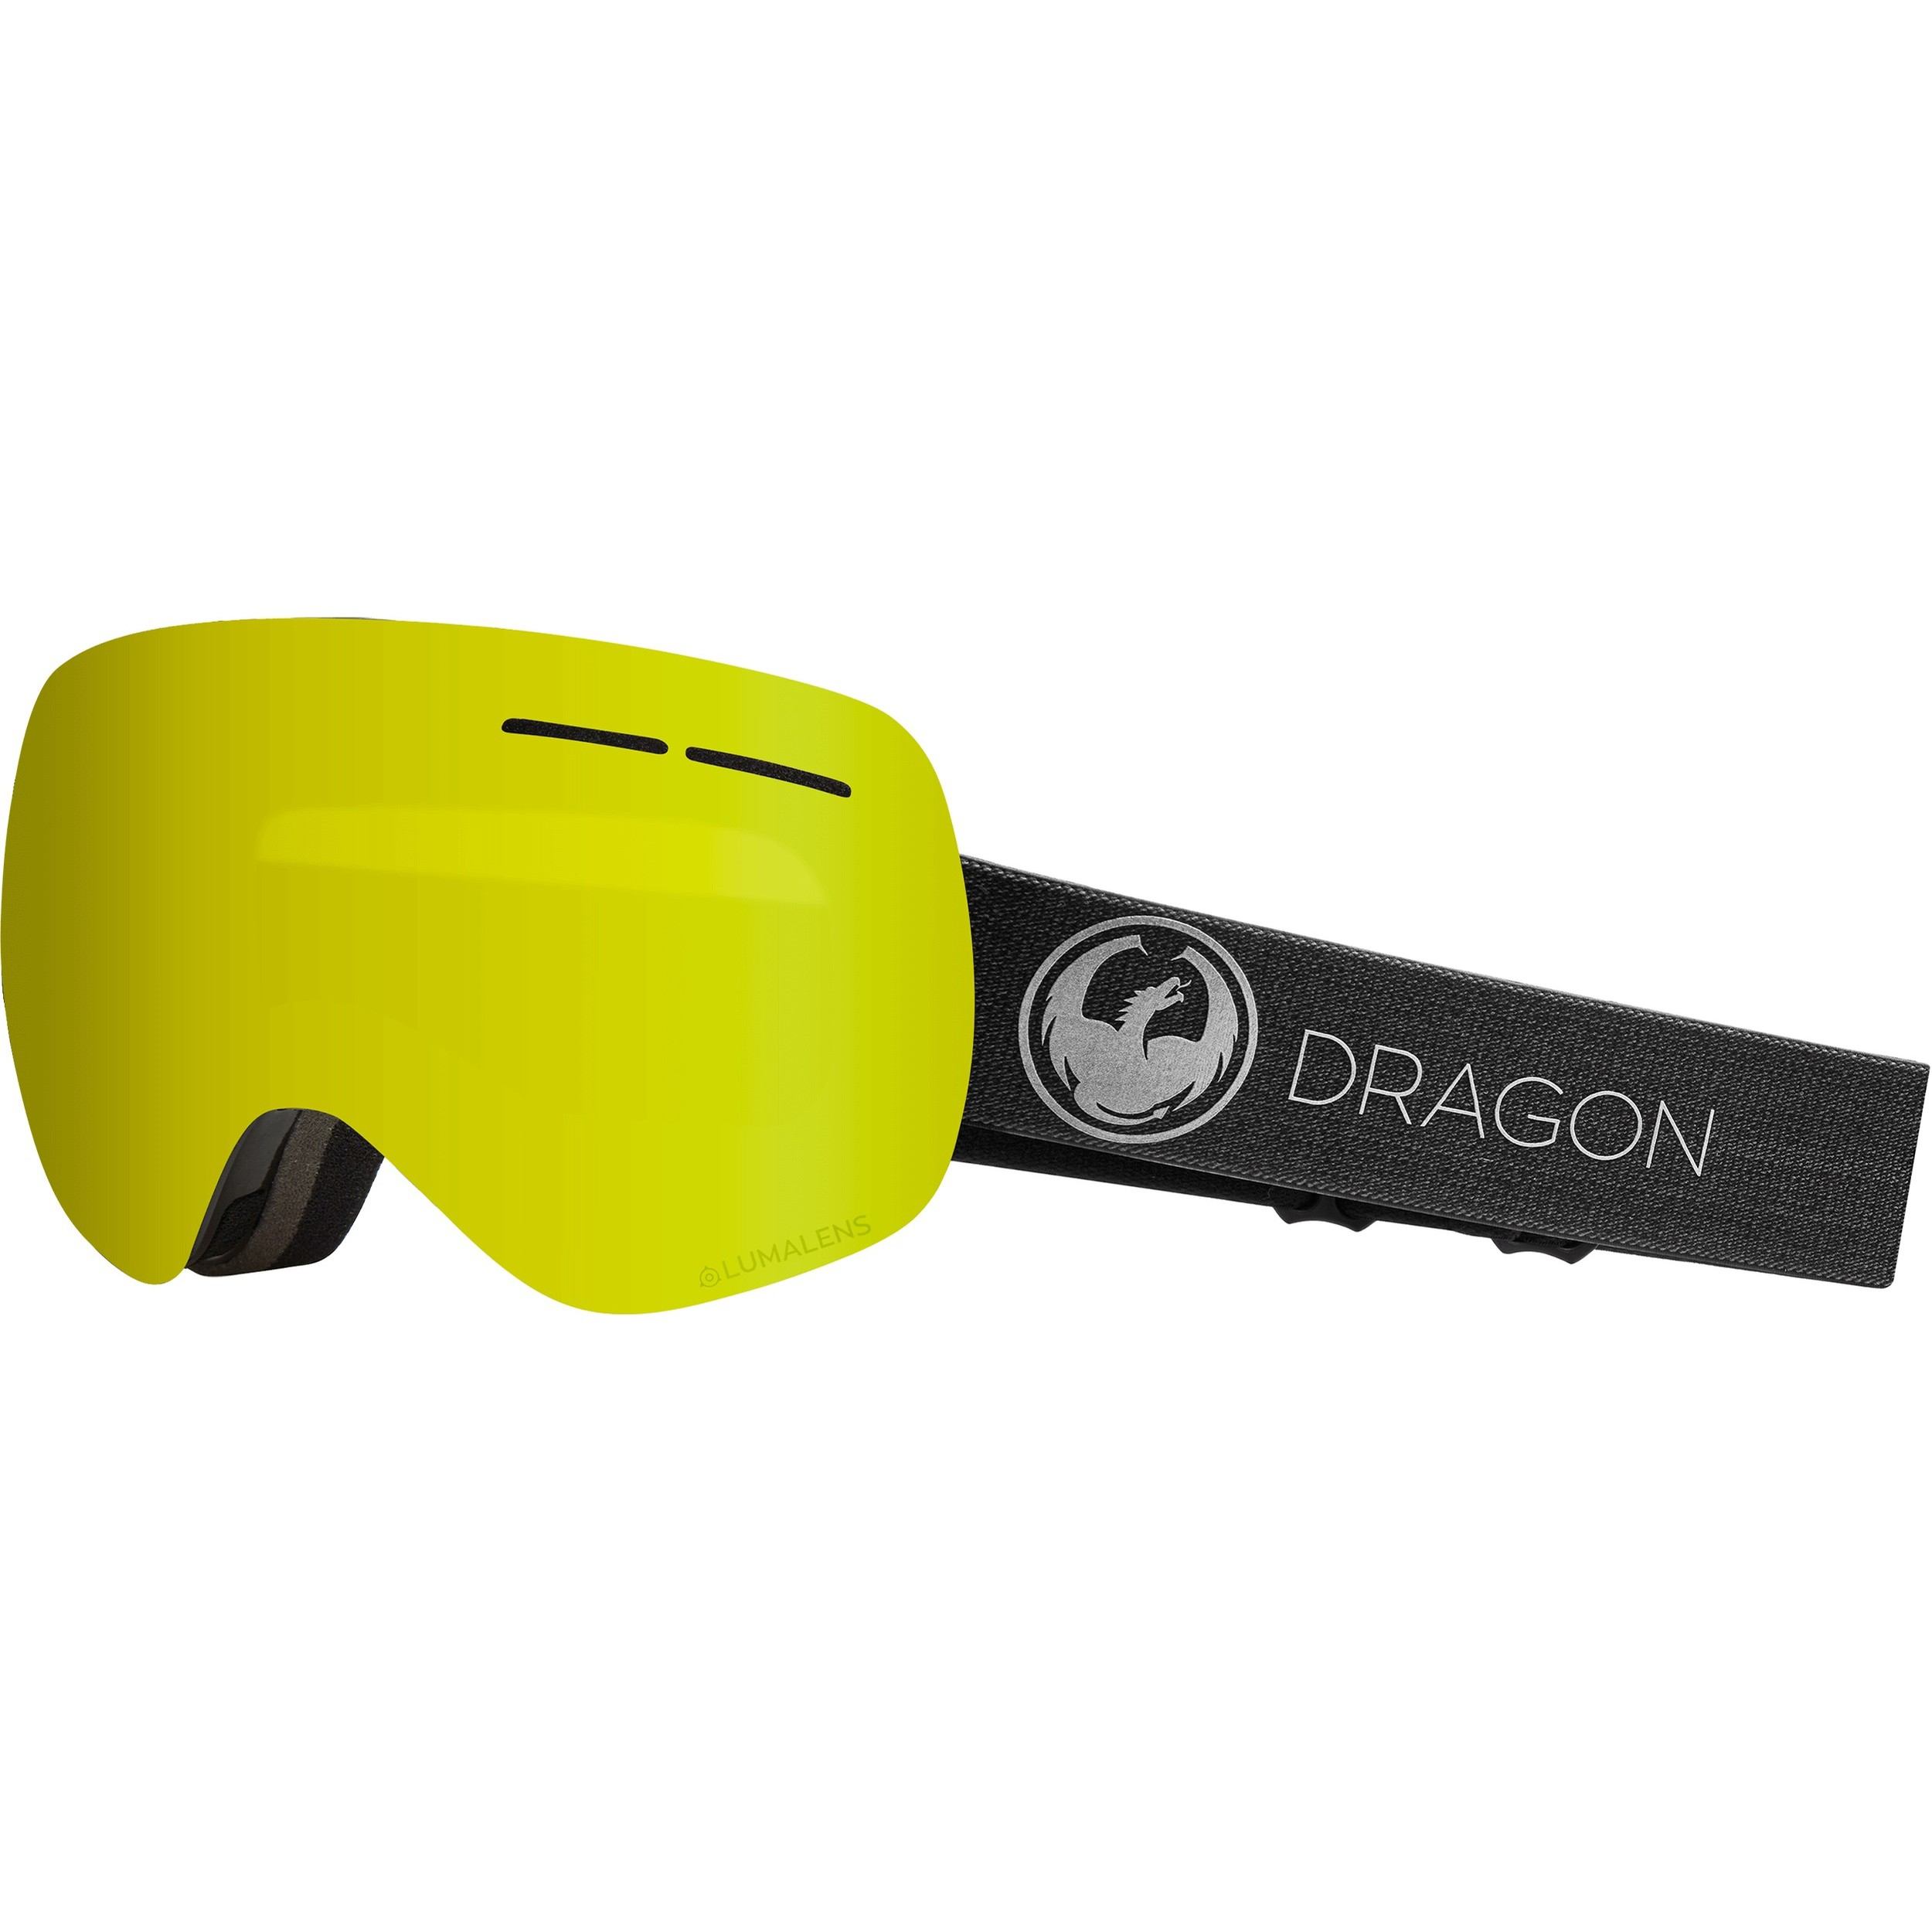 Dragon - X1s Photochromic Snow Goggle